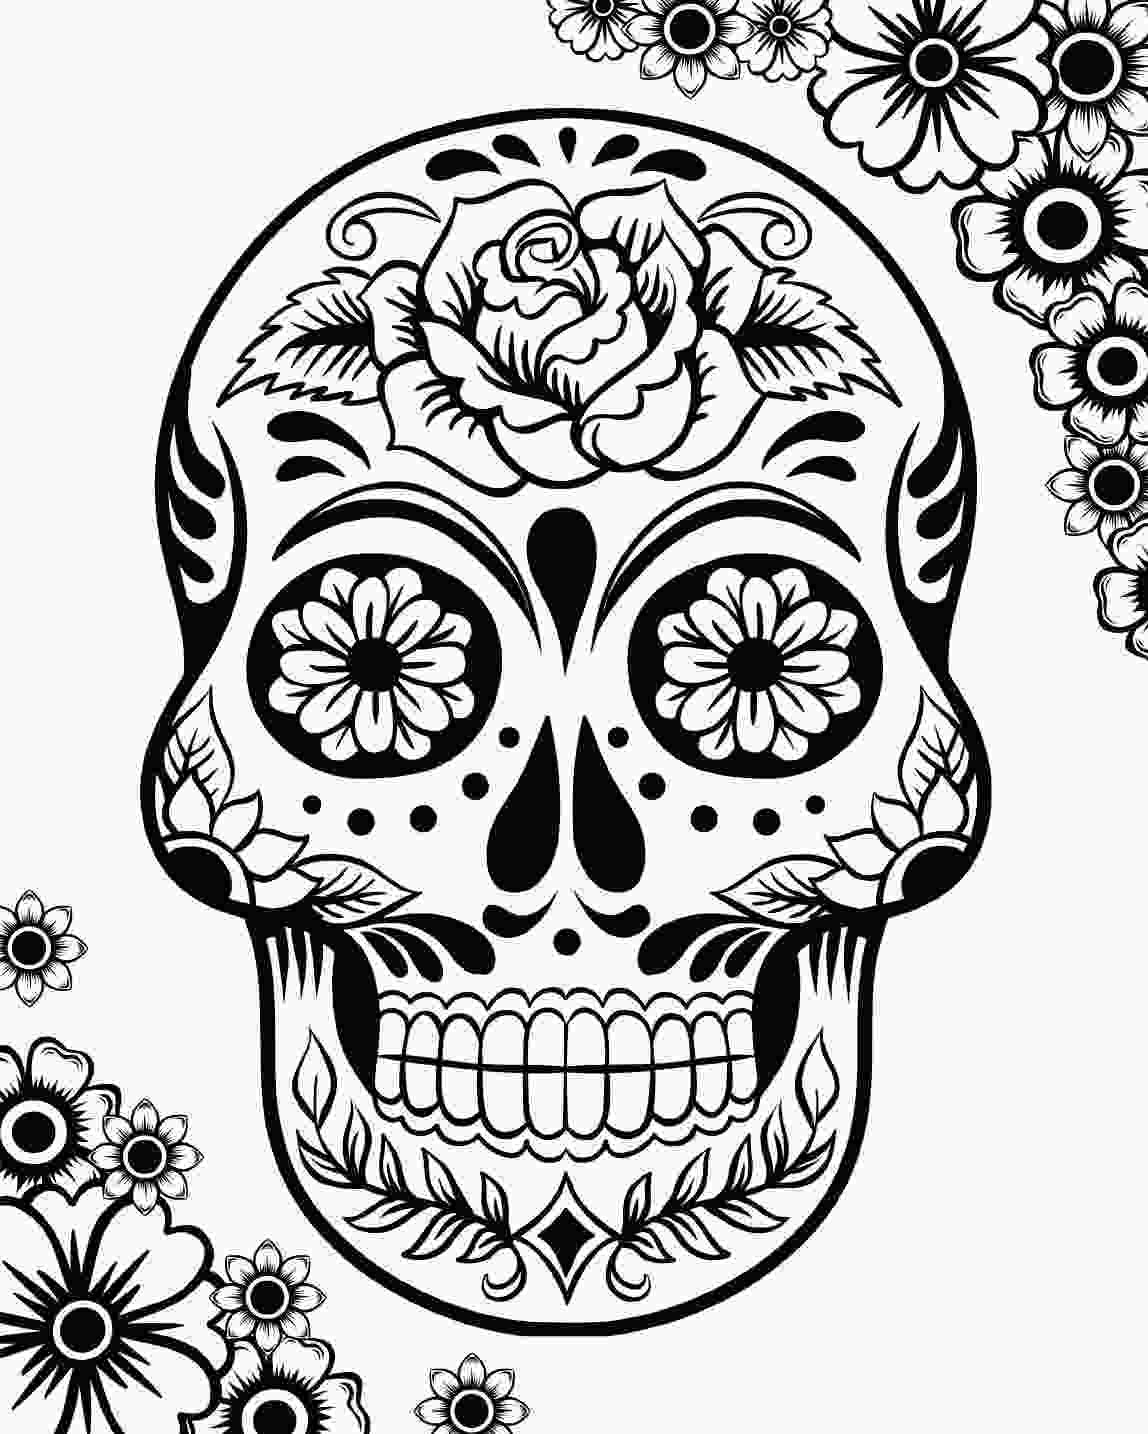 el dia de los muertos skull coloring pages free printable day of the dead coloring pages best